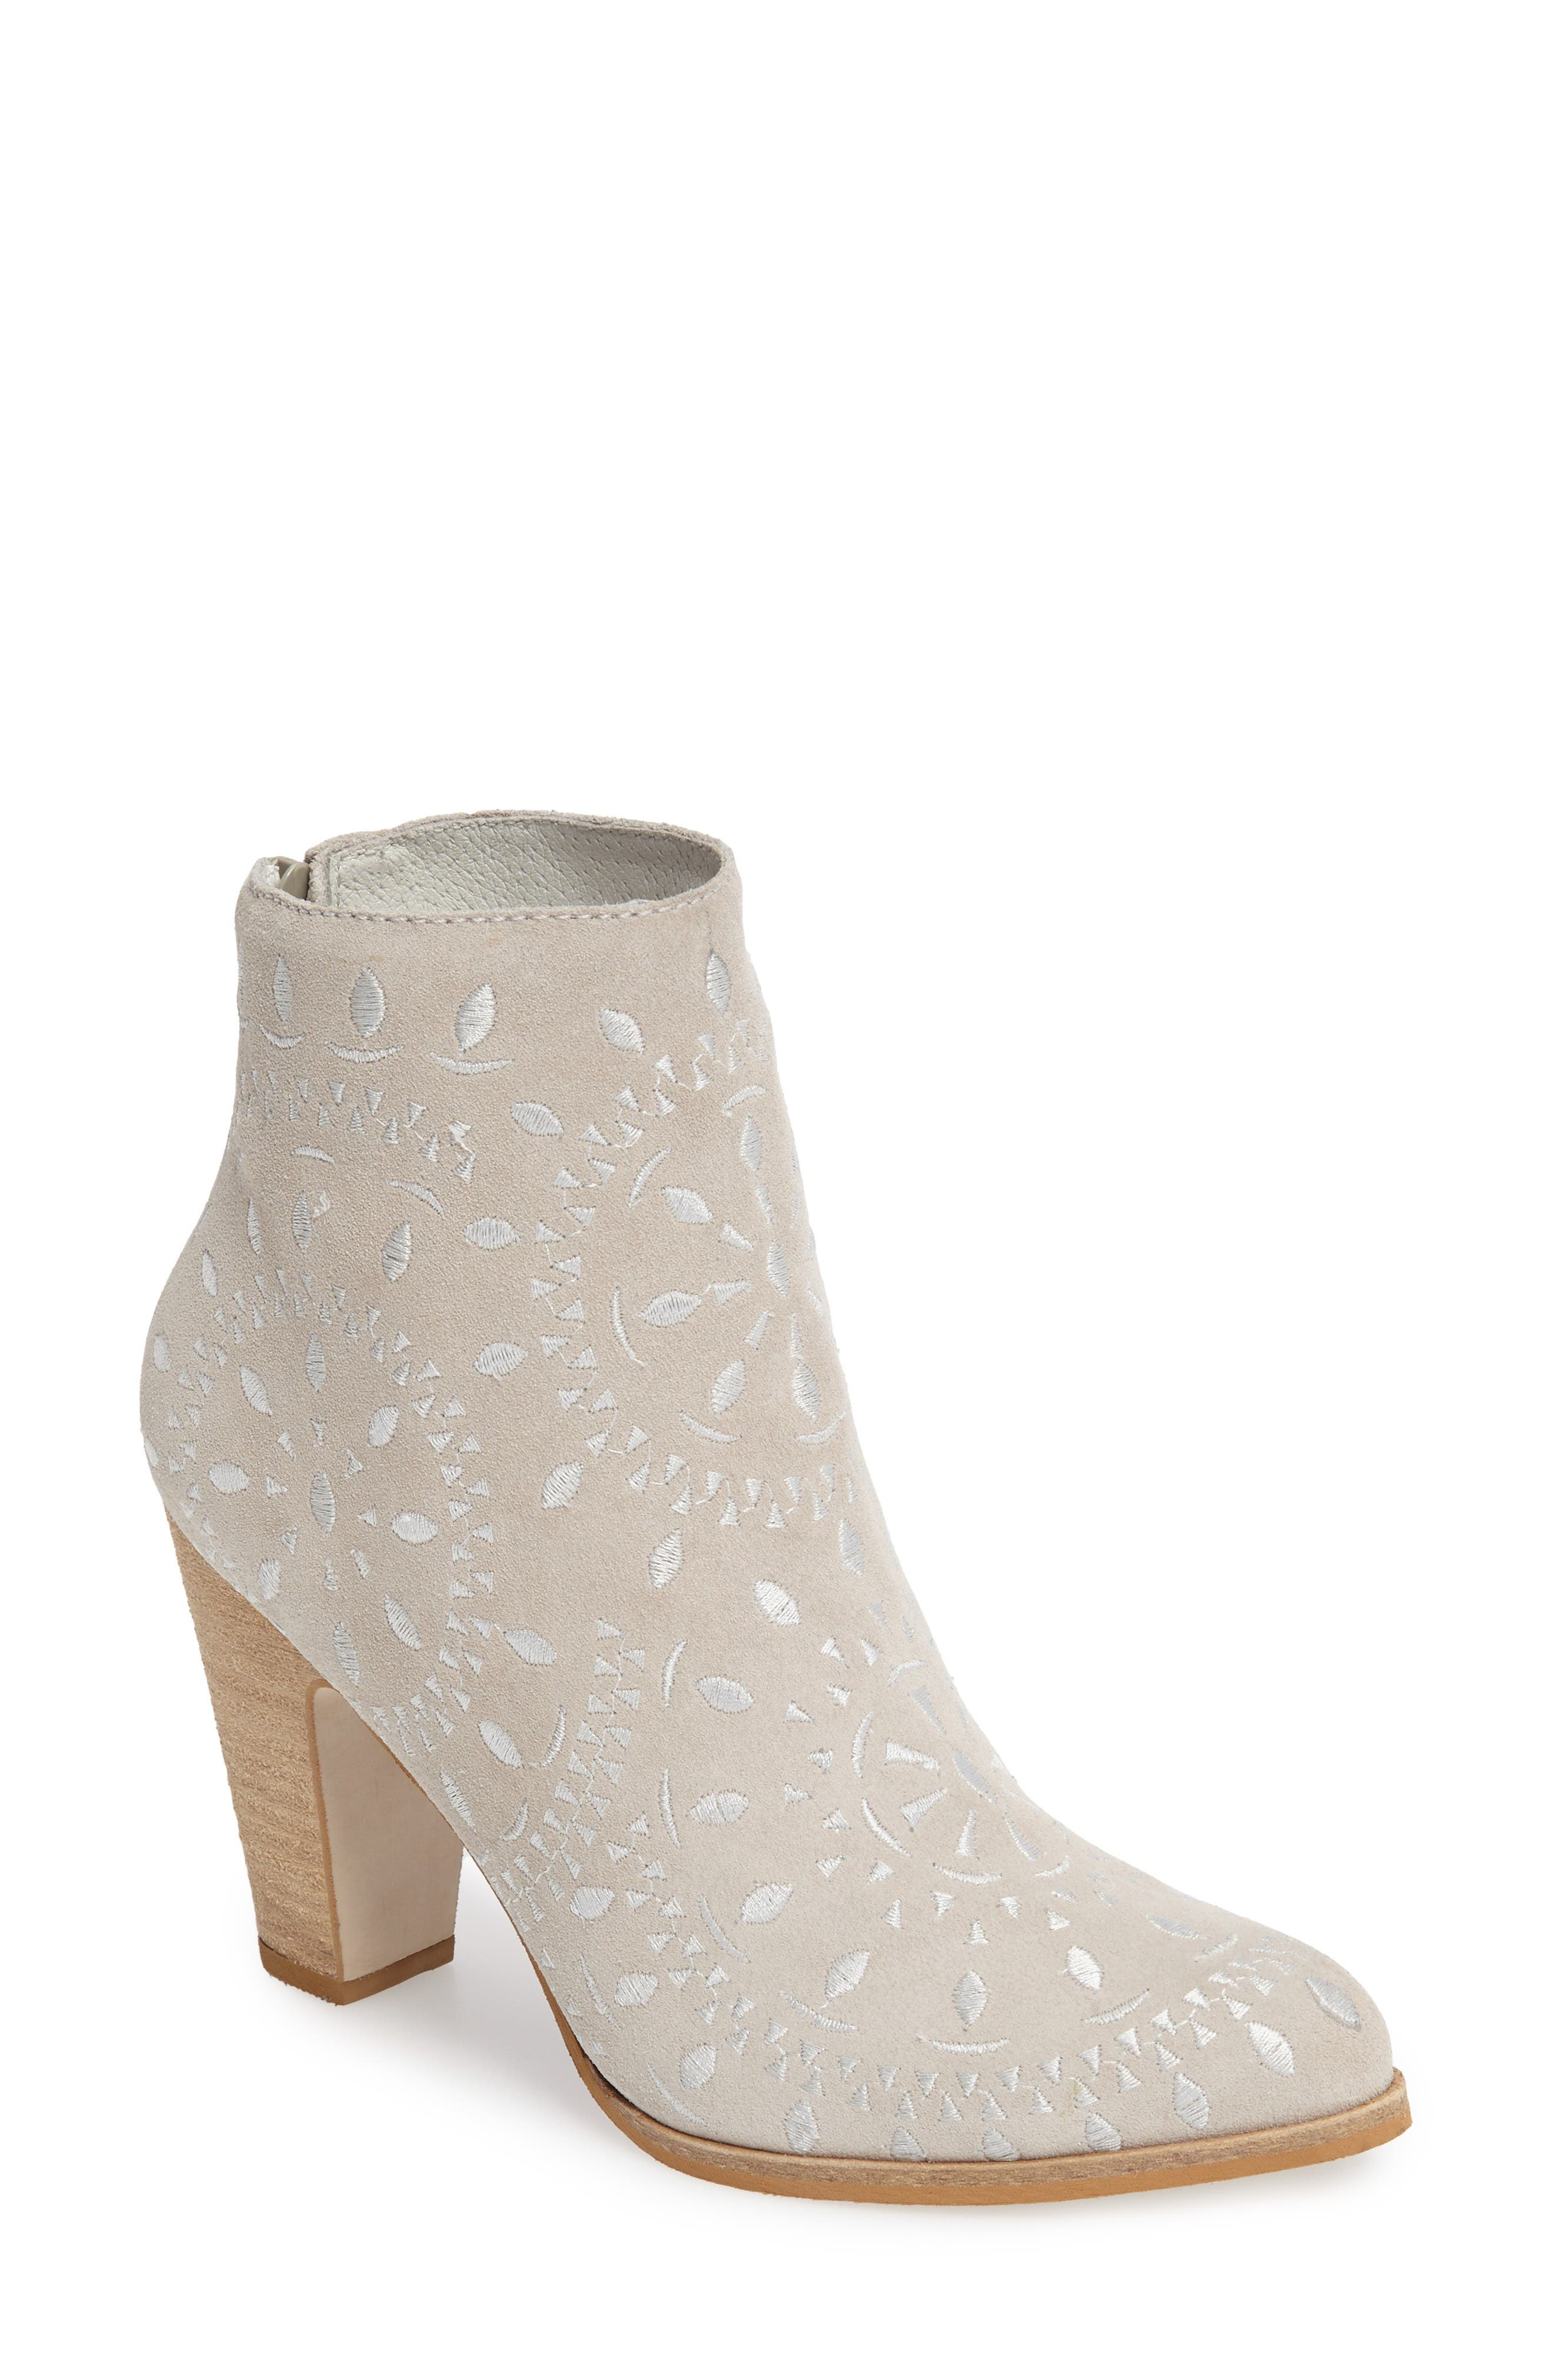 Springfield Bootie,                         Main,                         color, Ivory Suede